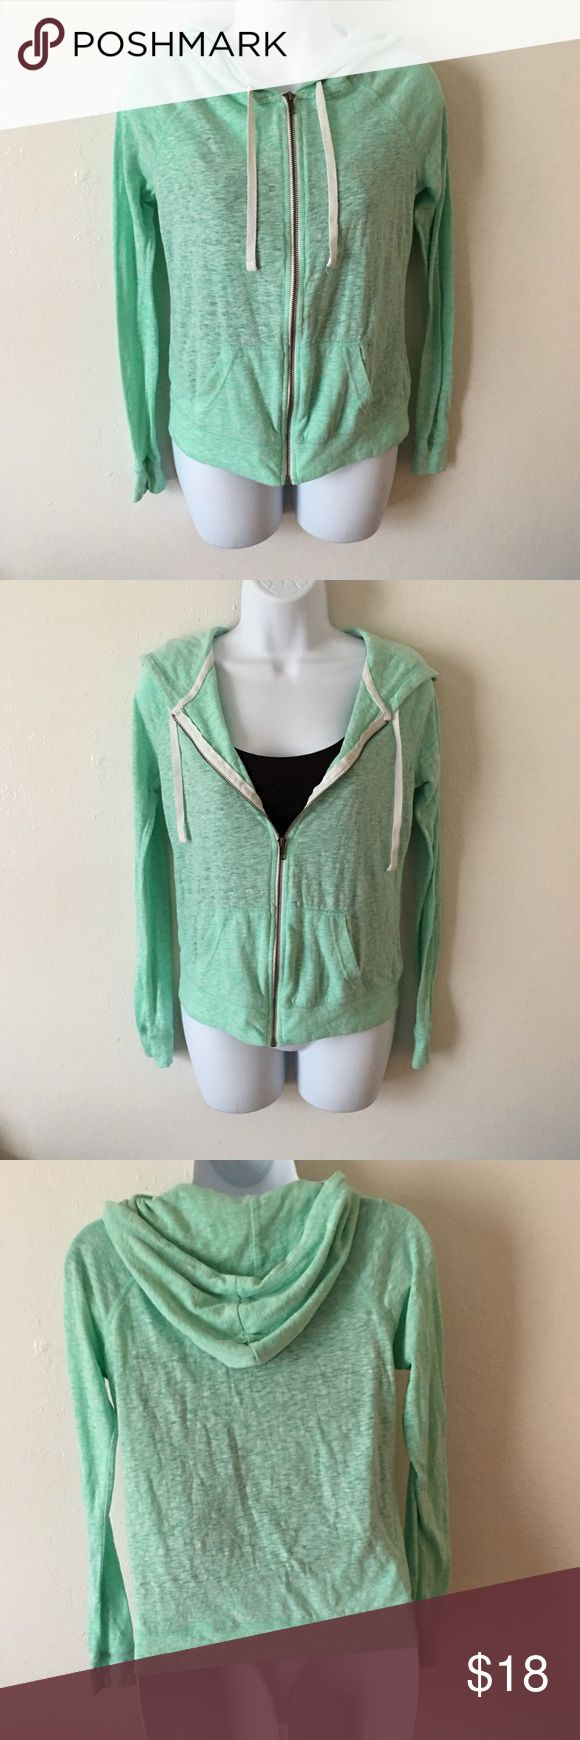 ZINE Thin Hoodie Jacket Super cute, thin, green hoodie jacket. In good used condition. Normal signs of wear, no visible damage. Zine Clothing Tops Sweatshirts & Hoodies